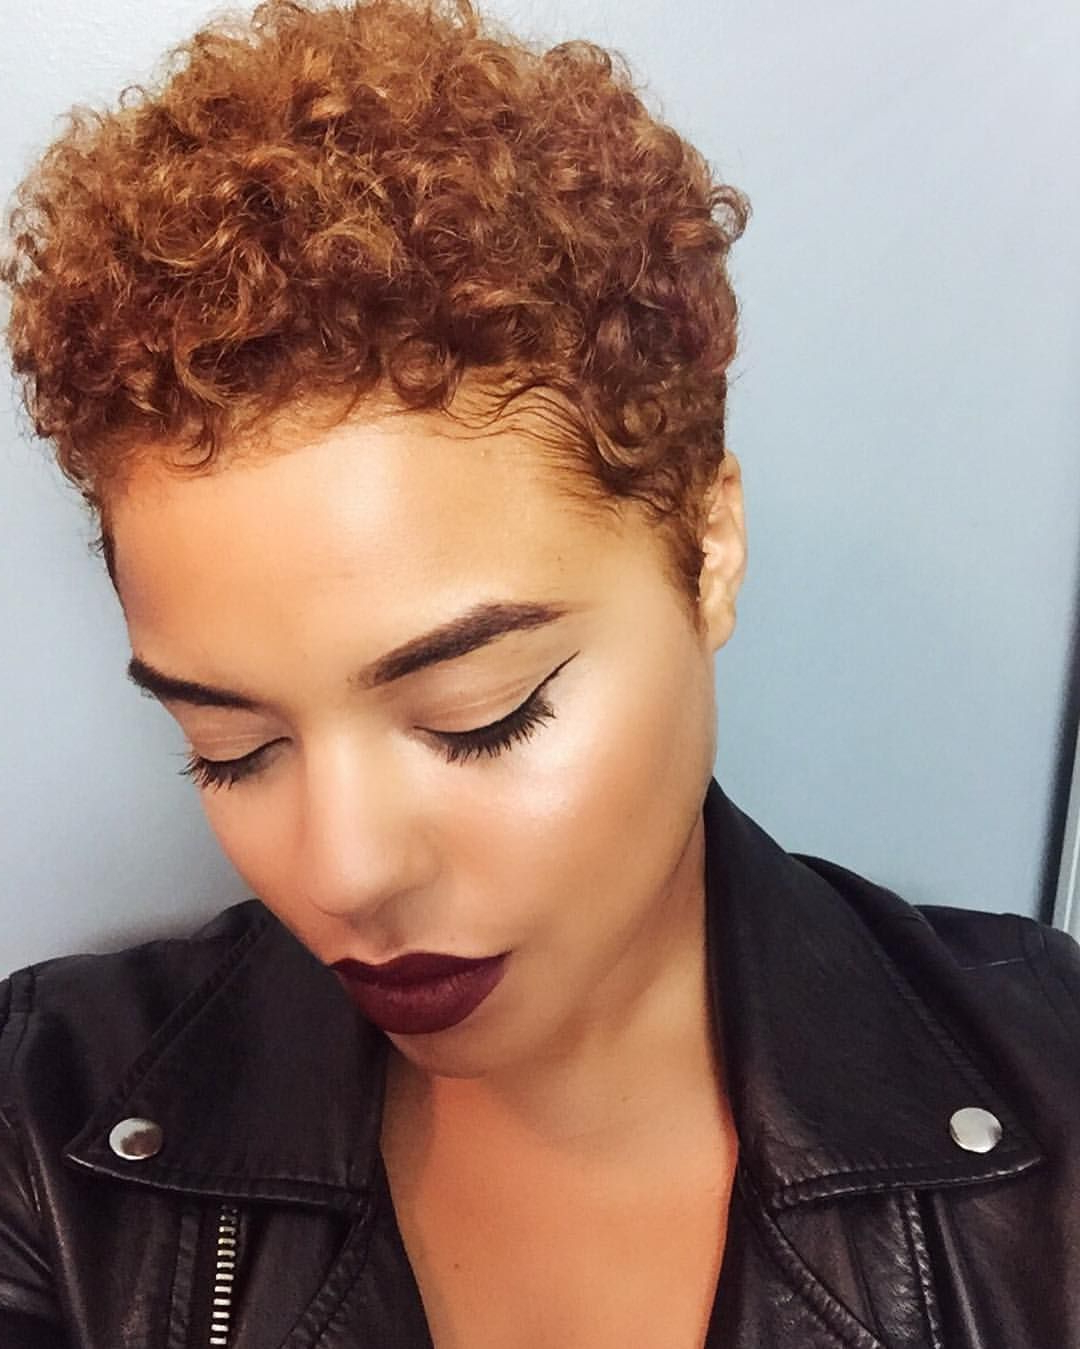 Pin?jada? On Black Women Hairstyles | Pinterest | Hair Pertaining To Tapered Brown Pixie Hairstyles With Ginger Curls (View 2 of 25)